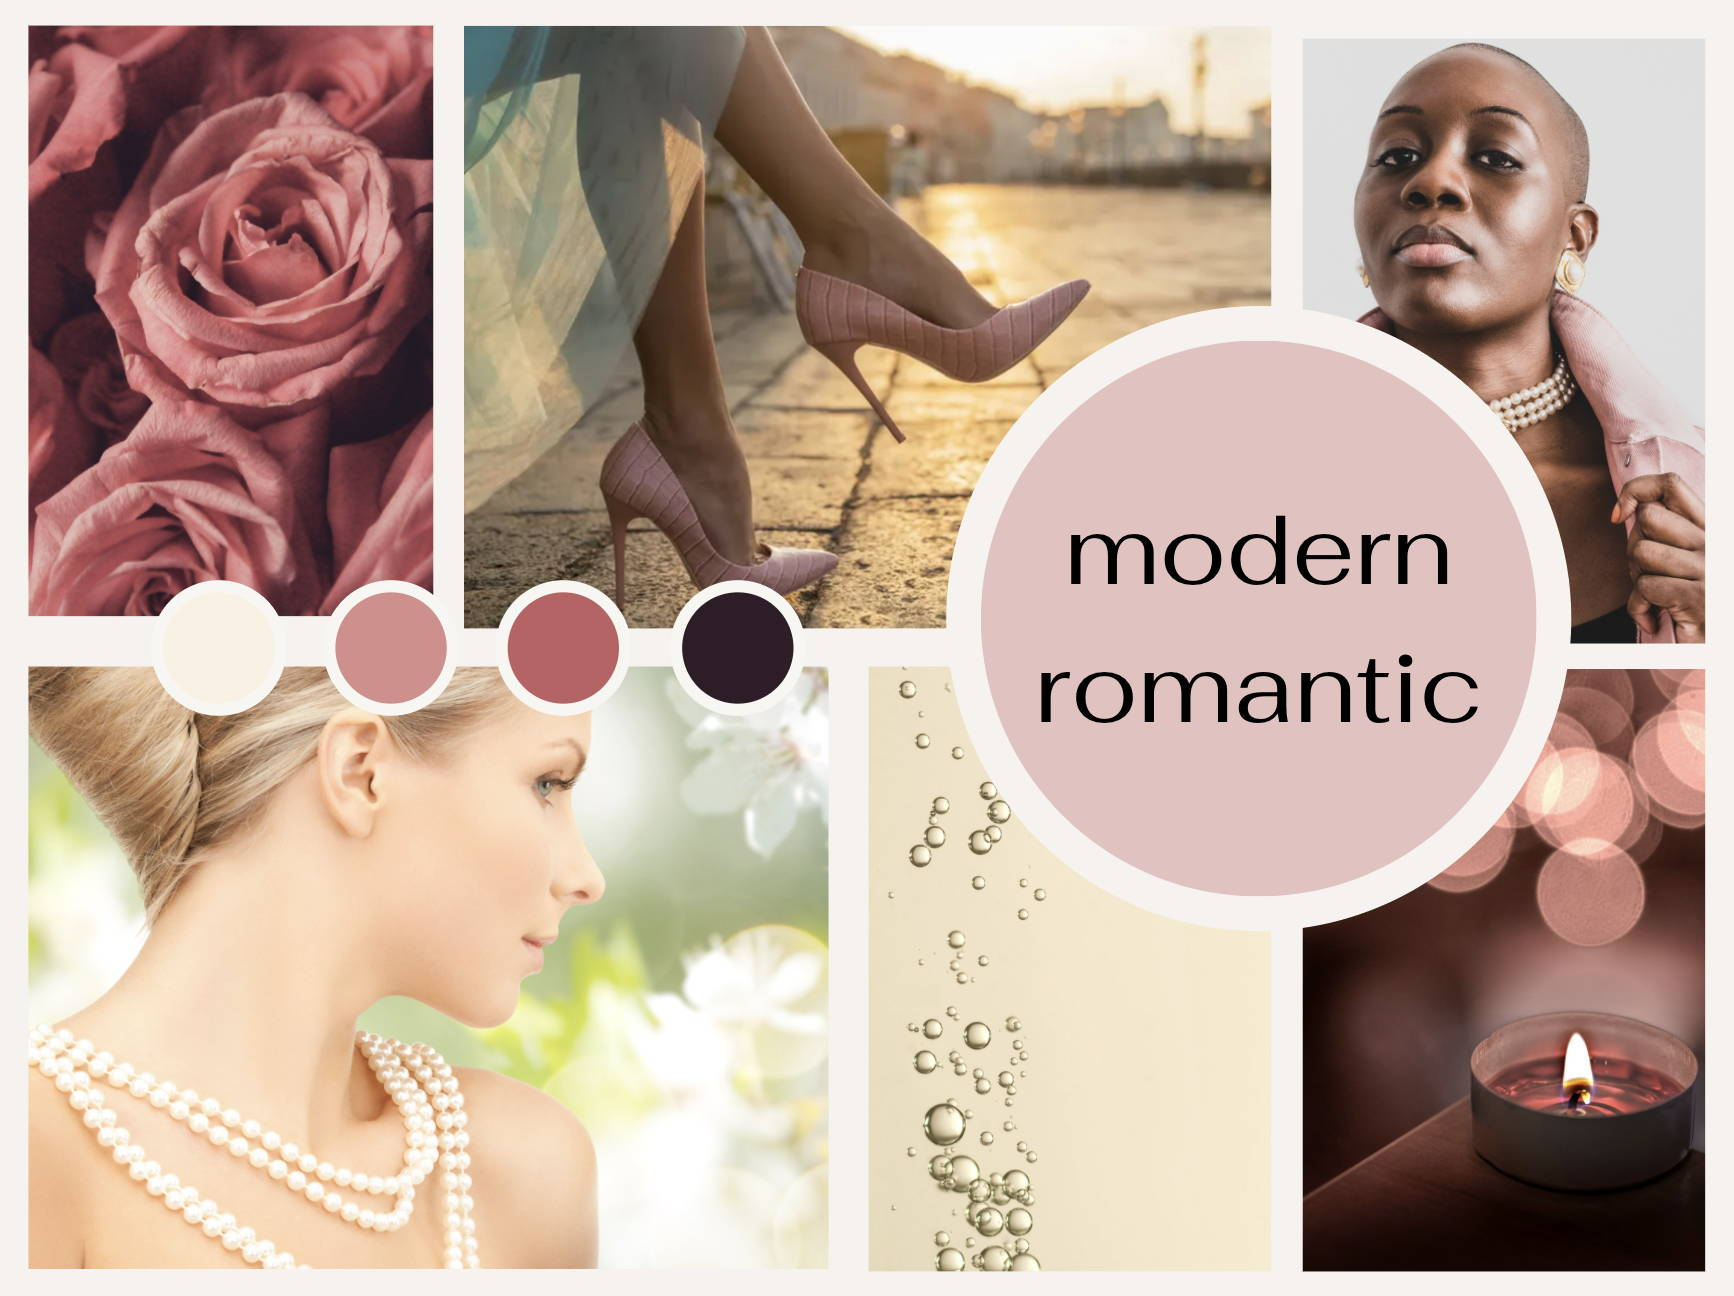 modern romantic scents at INDIEHOUSE